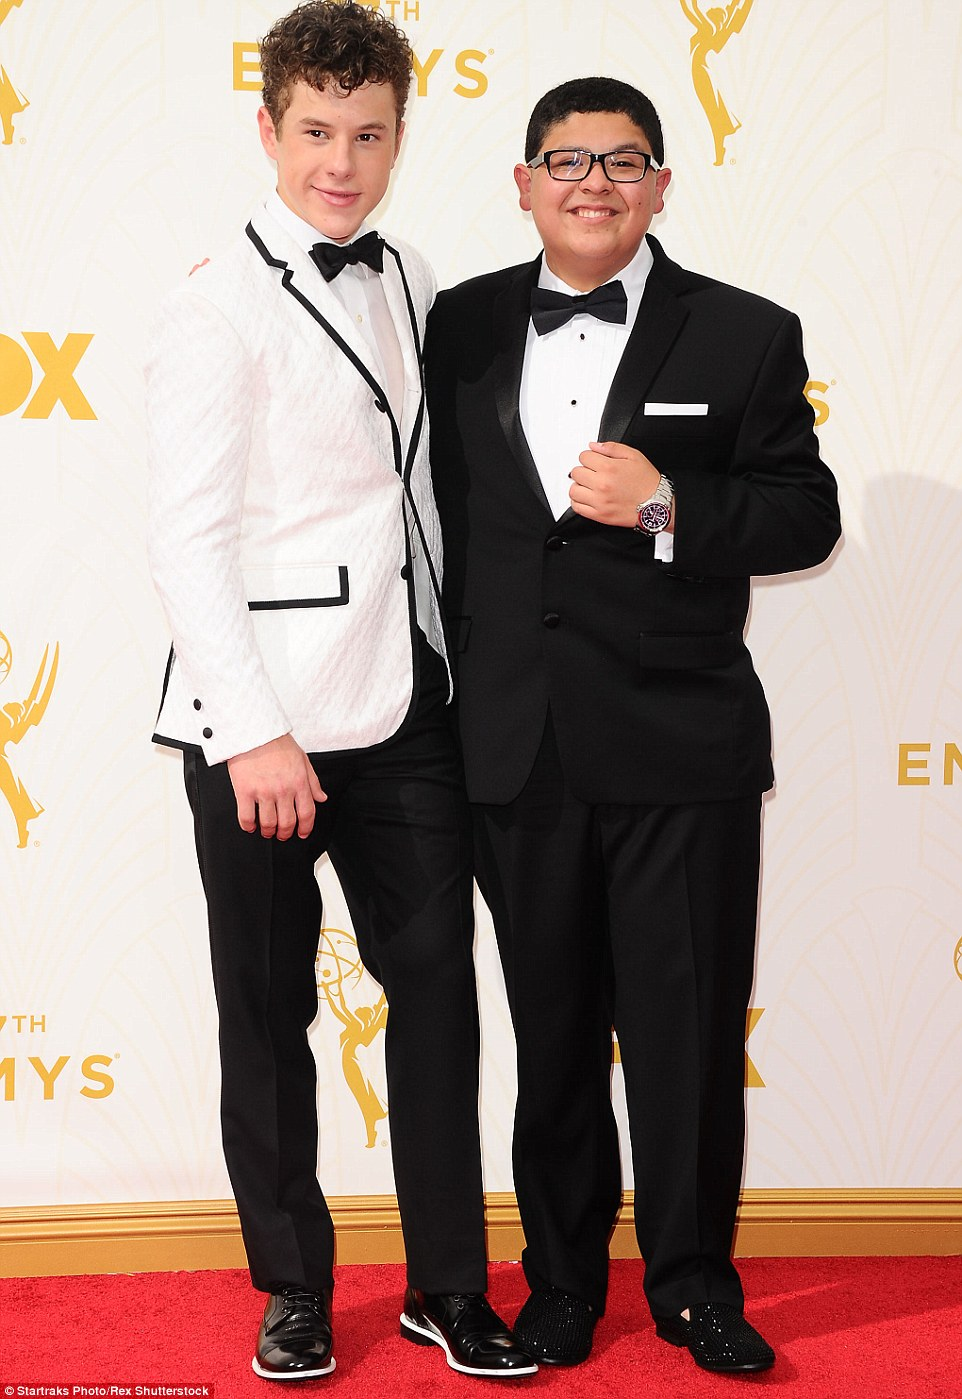 Modern Family stars Rico Rodriguez and Nolan Gould looked sharp in their smart suits